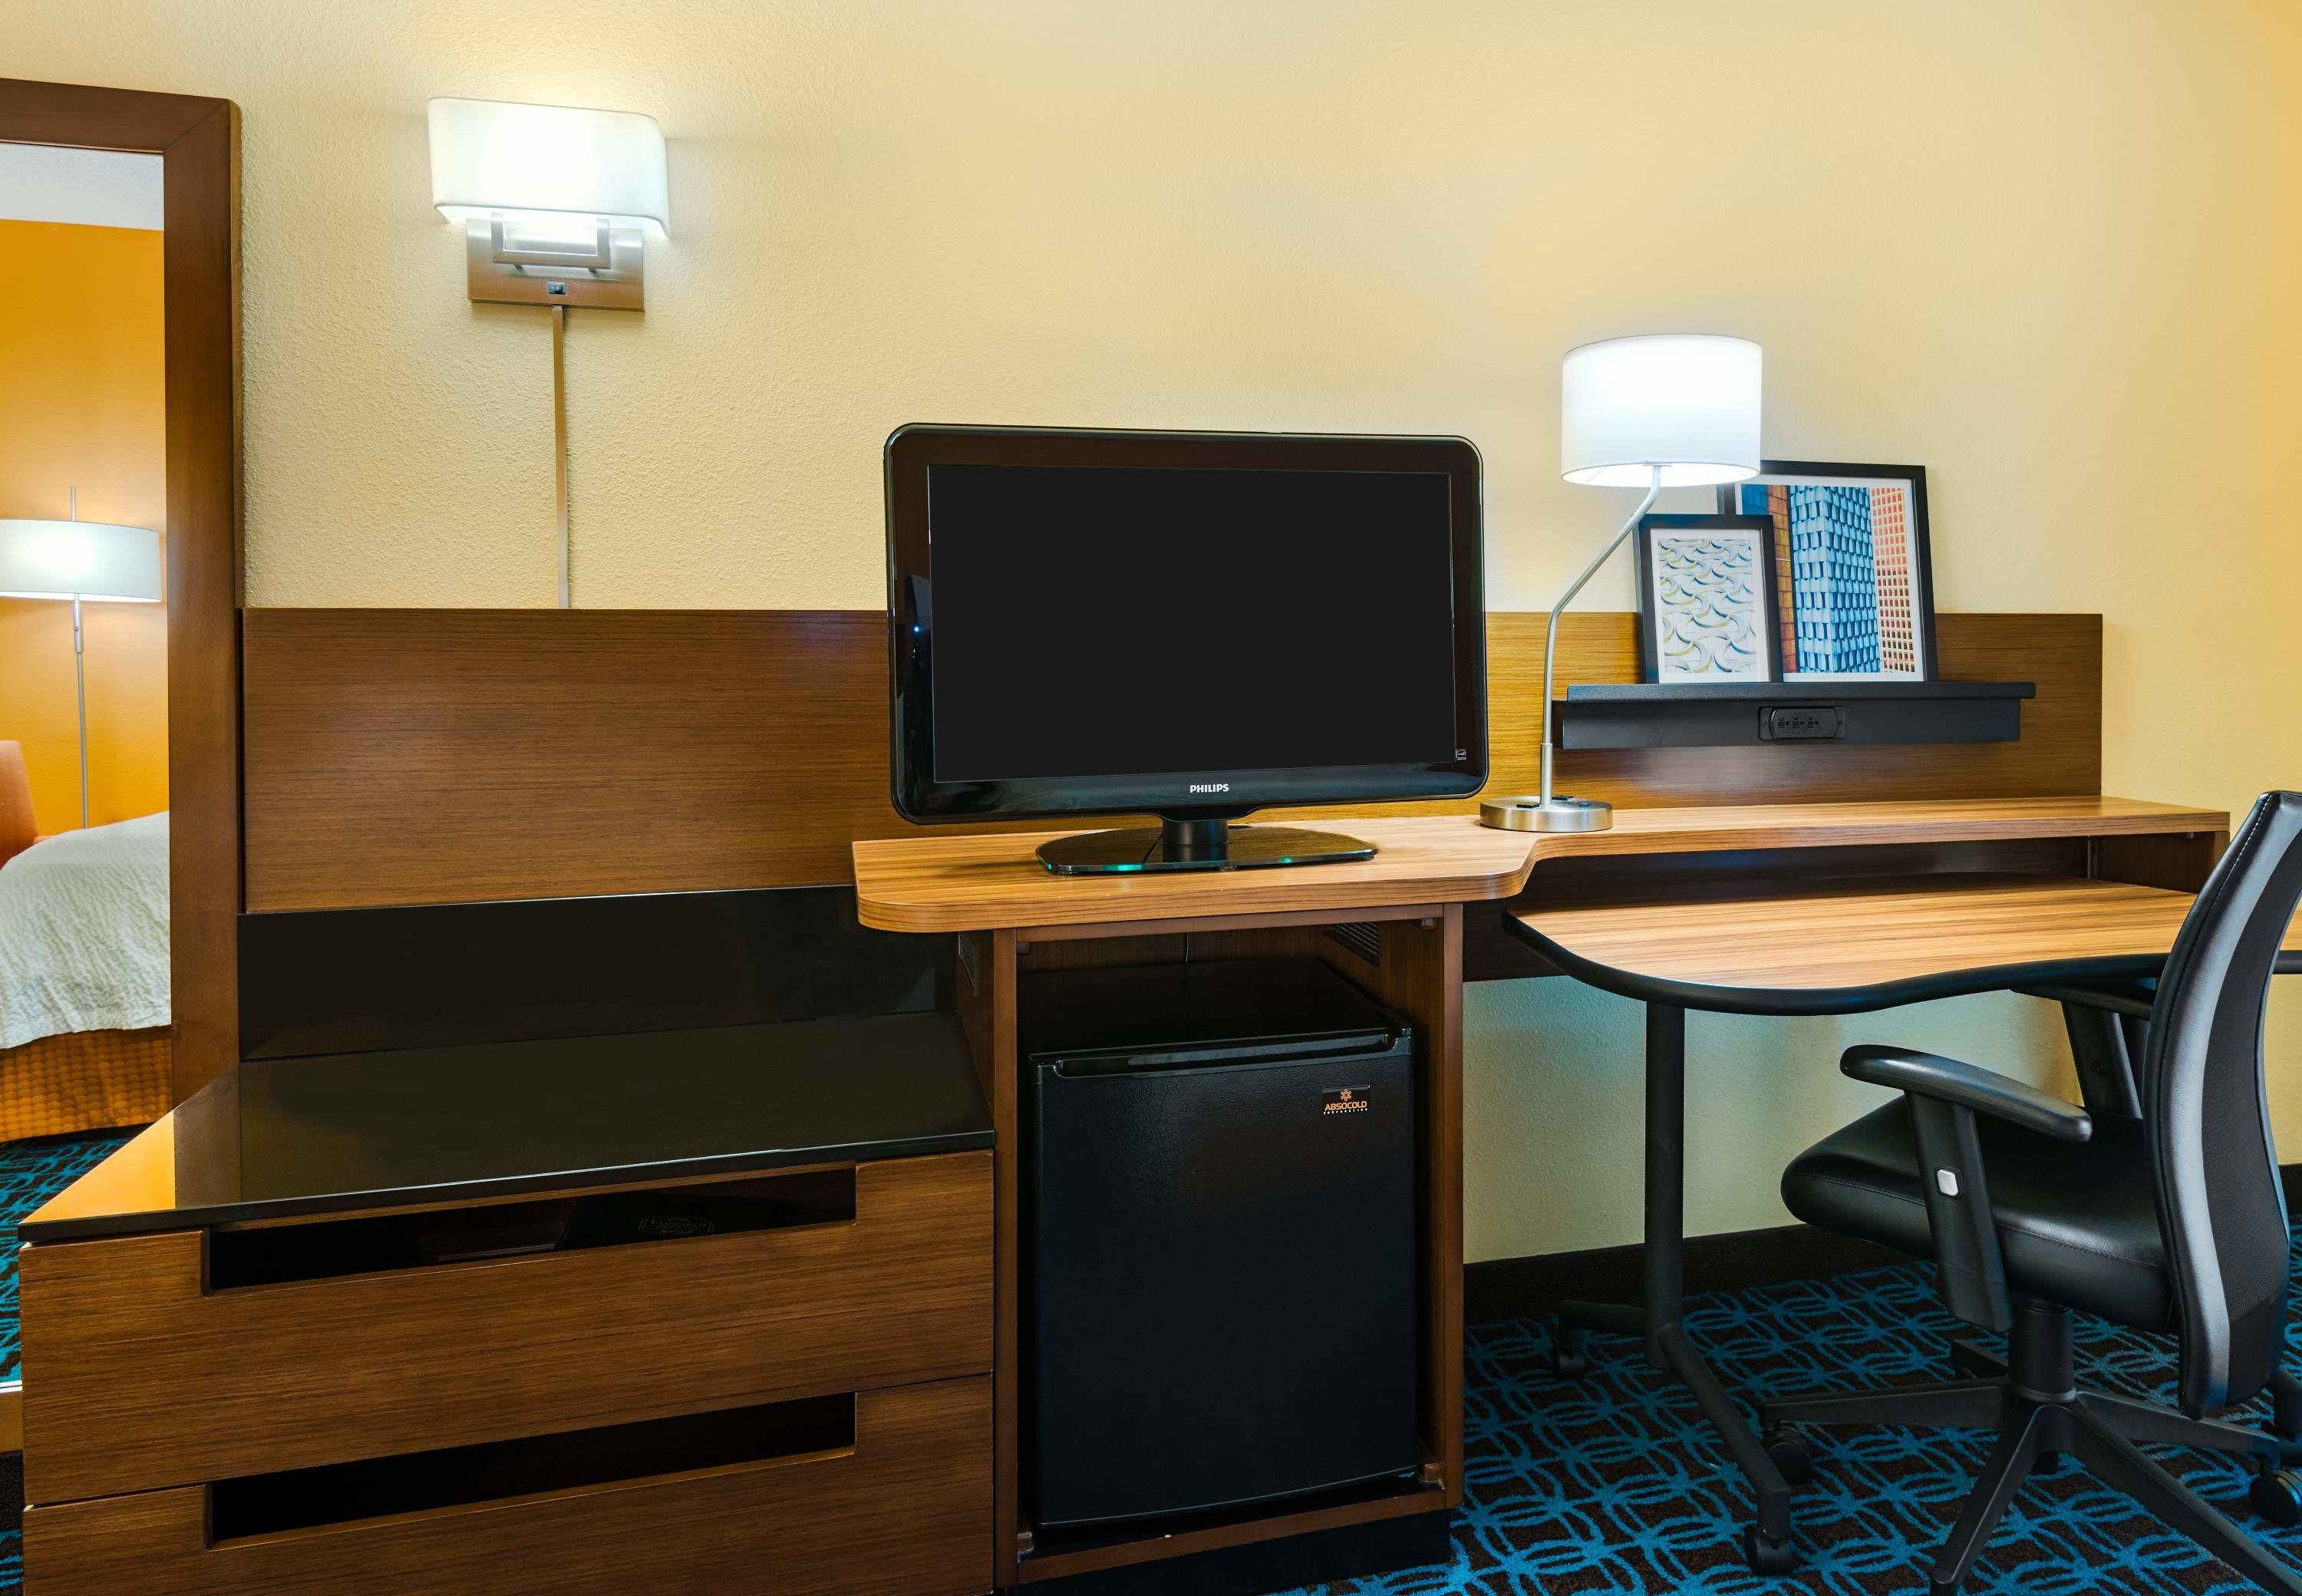 Fairfield Inn & Suites by Marriott Clearwater image 3